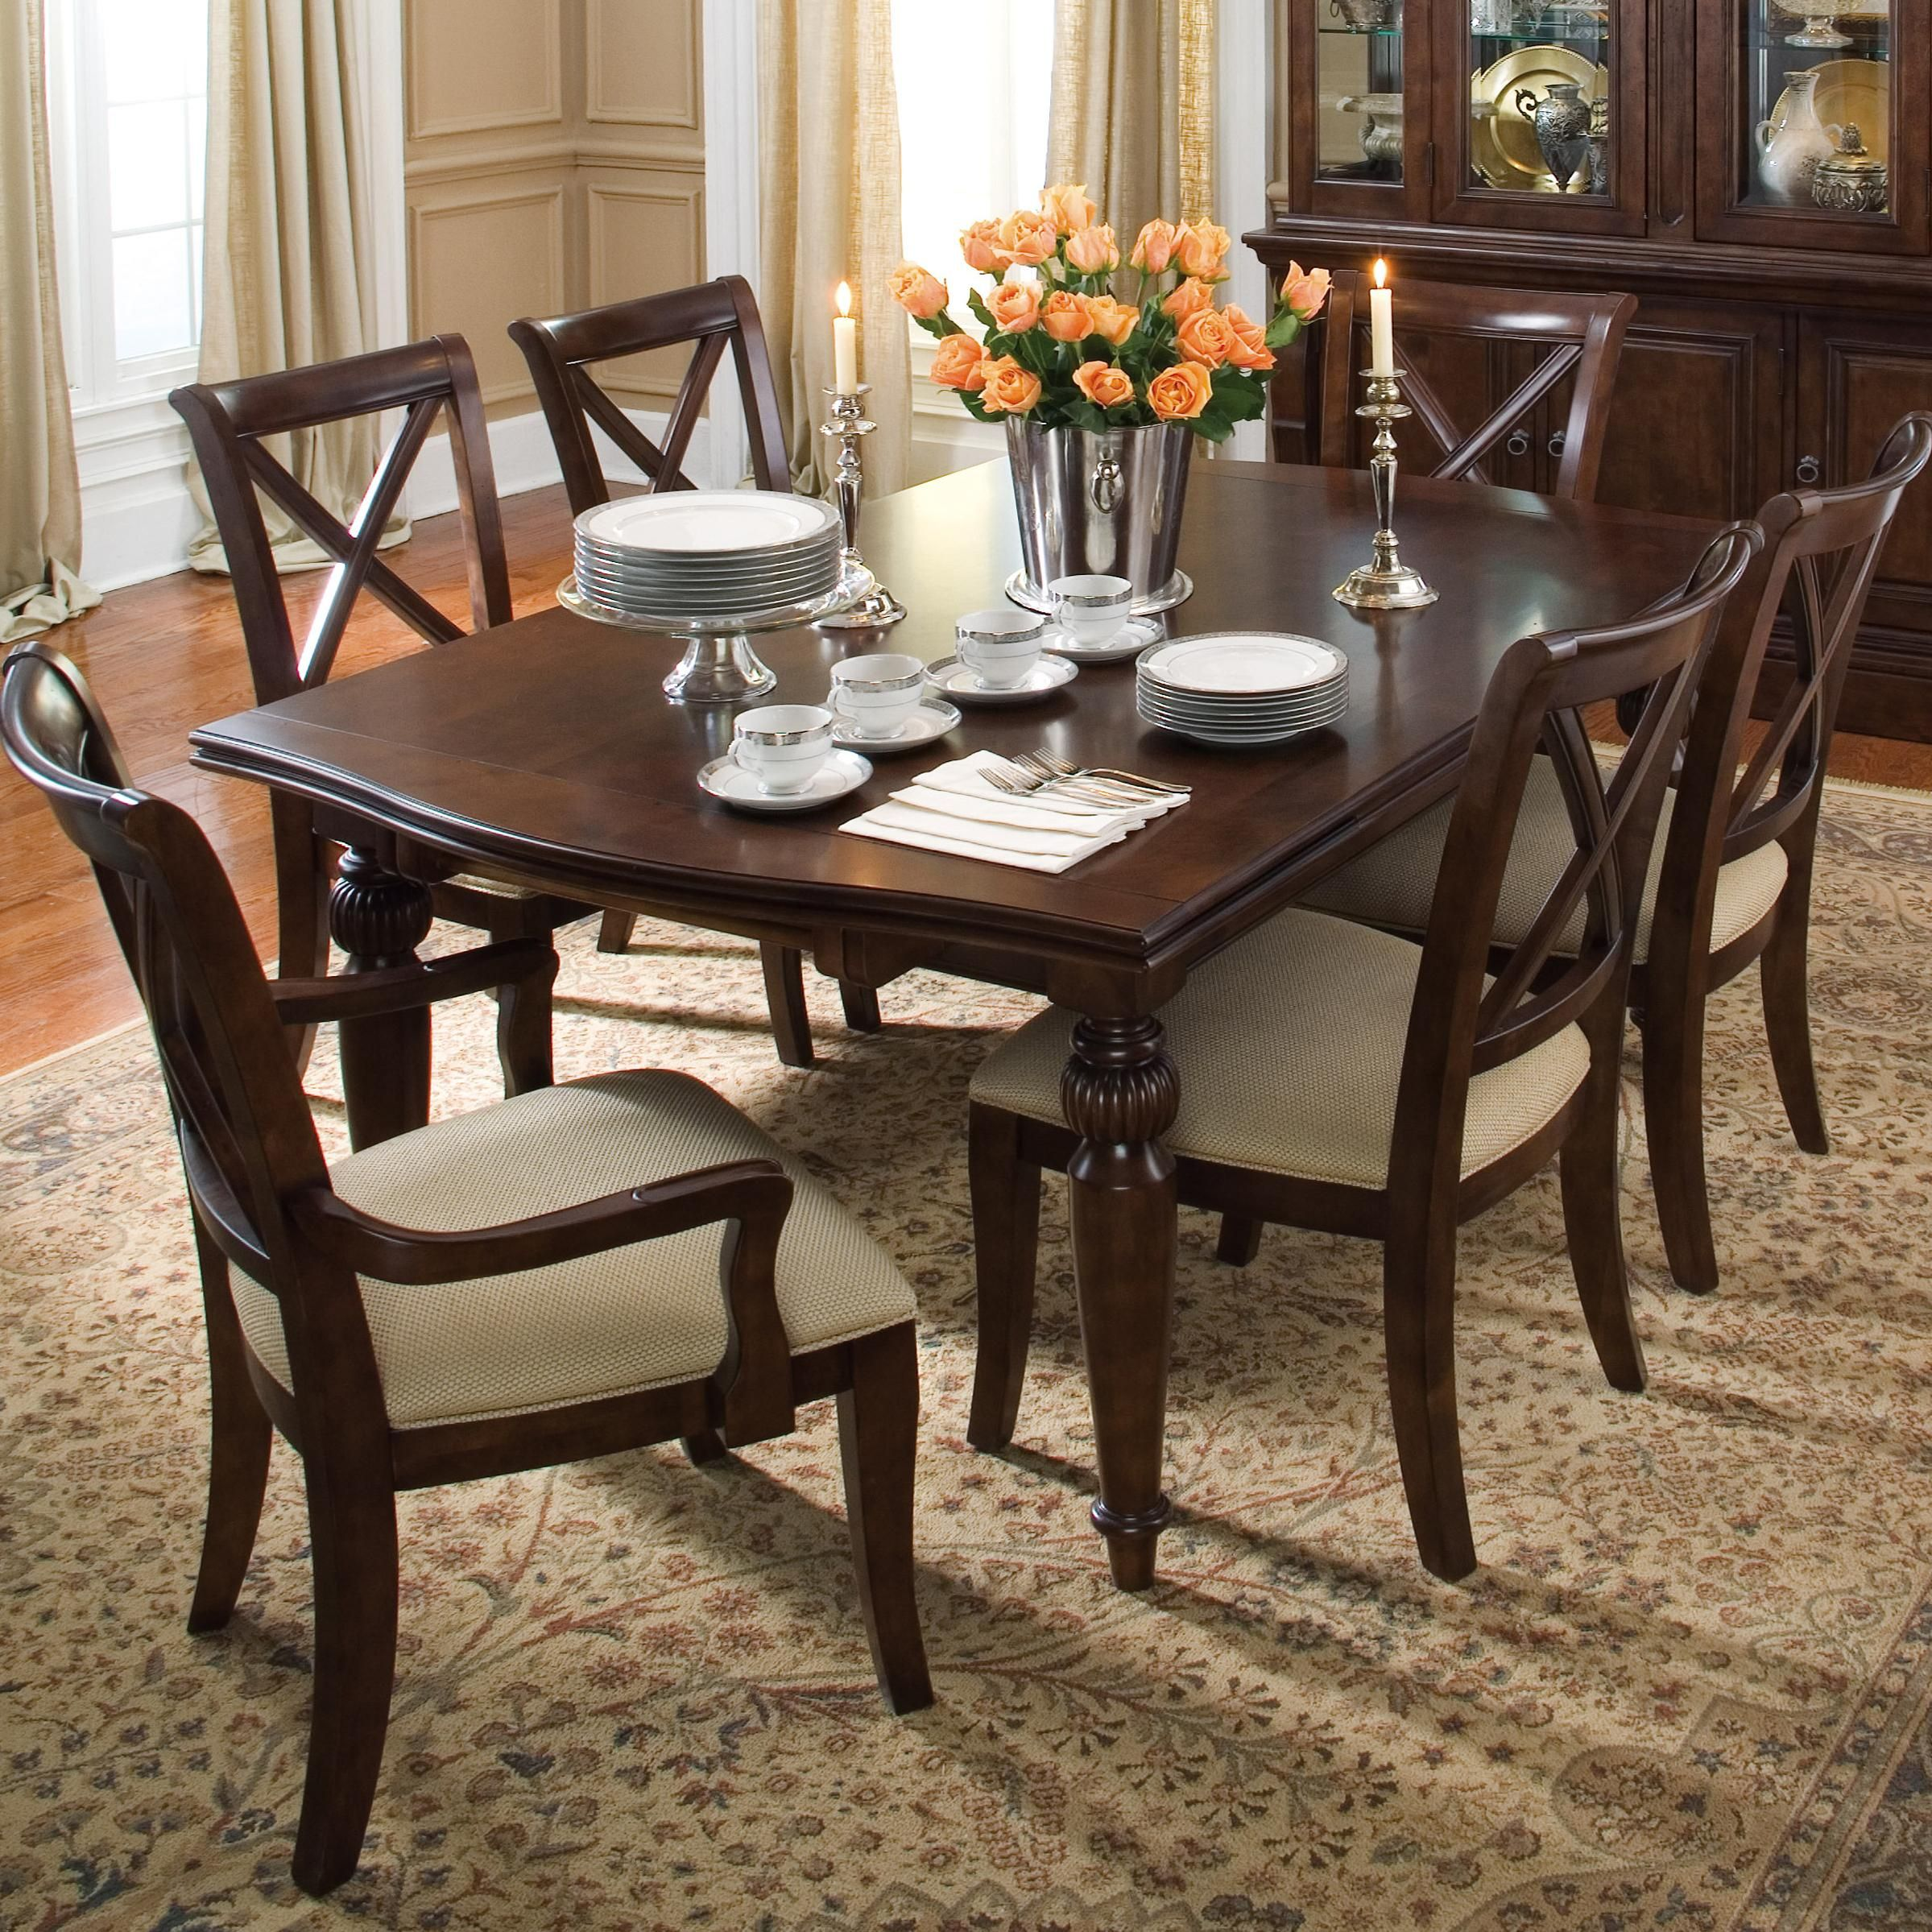 Dining Room Furniture Rochester Ny: Kitchen Sets Rochester Ny